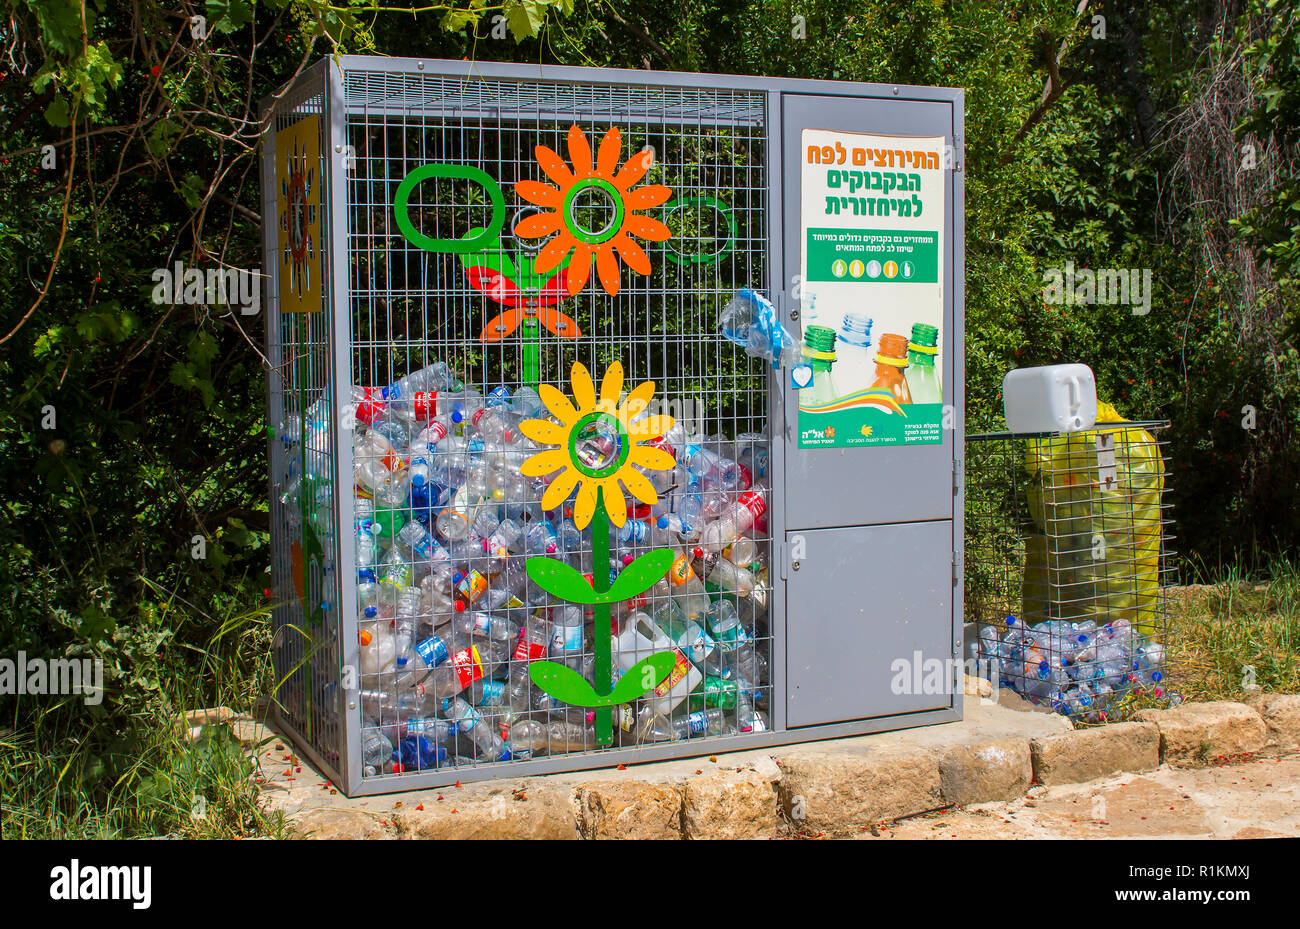 4 May 2018 A plastics only recycling collection point in a car park in Paneus, Caeserea Philippi, Israel - Stock Image